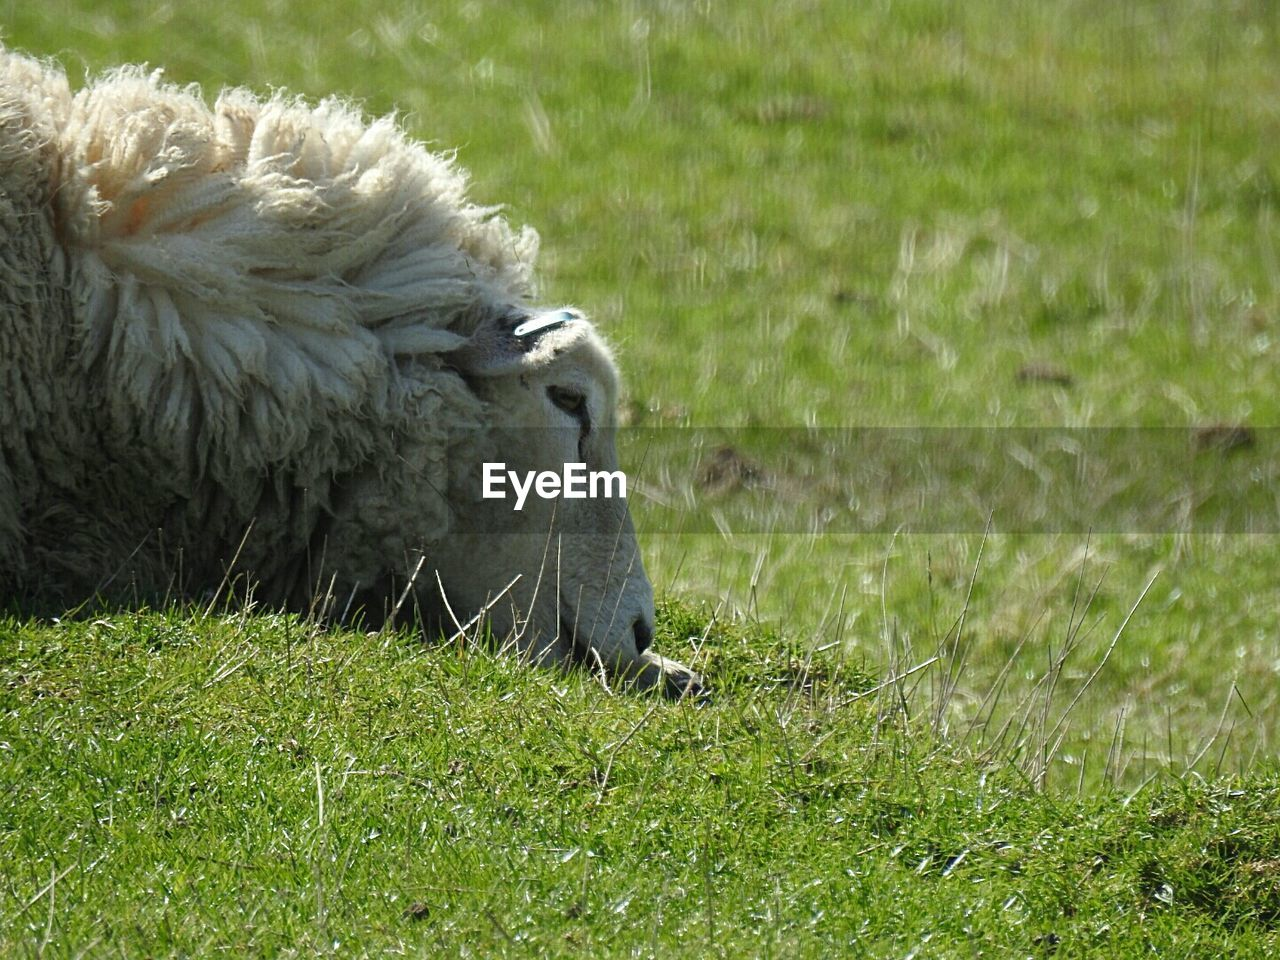 animal themes, grass, mammal, animal, plant, field, land, vertebrate, domestic animals, green color, one animal, pets, livestock, no people, nature, day, relaxation, sheep, domestic, animal wildlife, outdoors, herbivorous, animal head